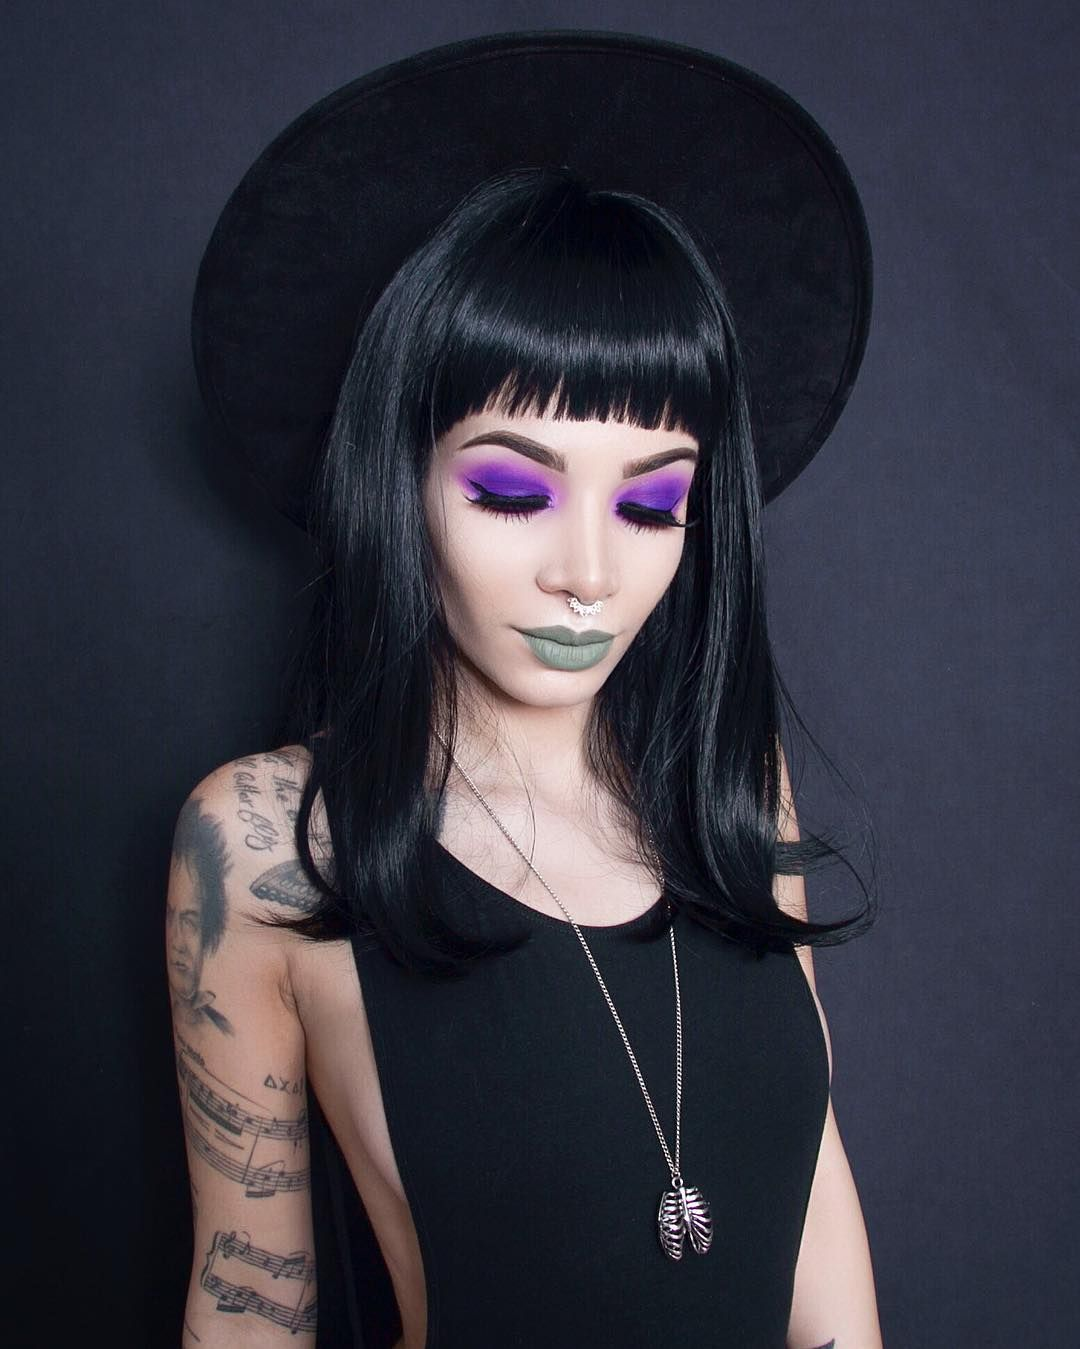 Witchy woman. Selftaught Vancouver based visual artist